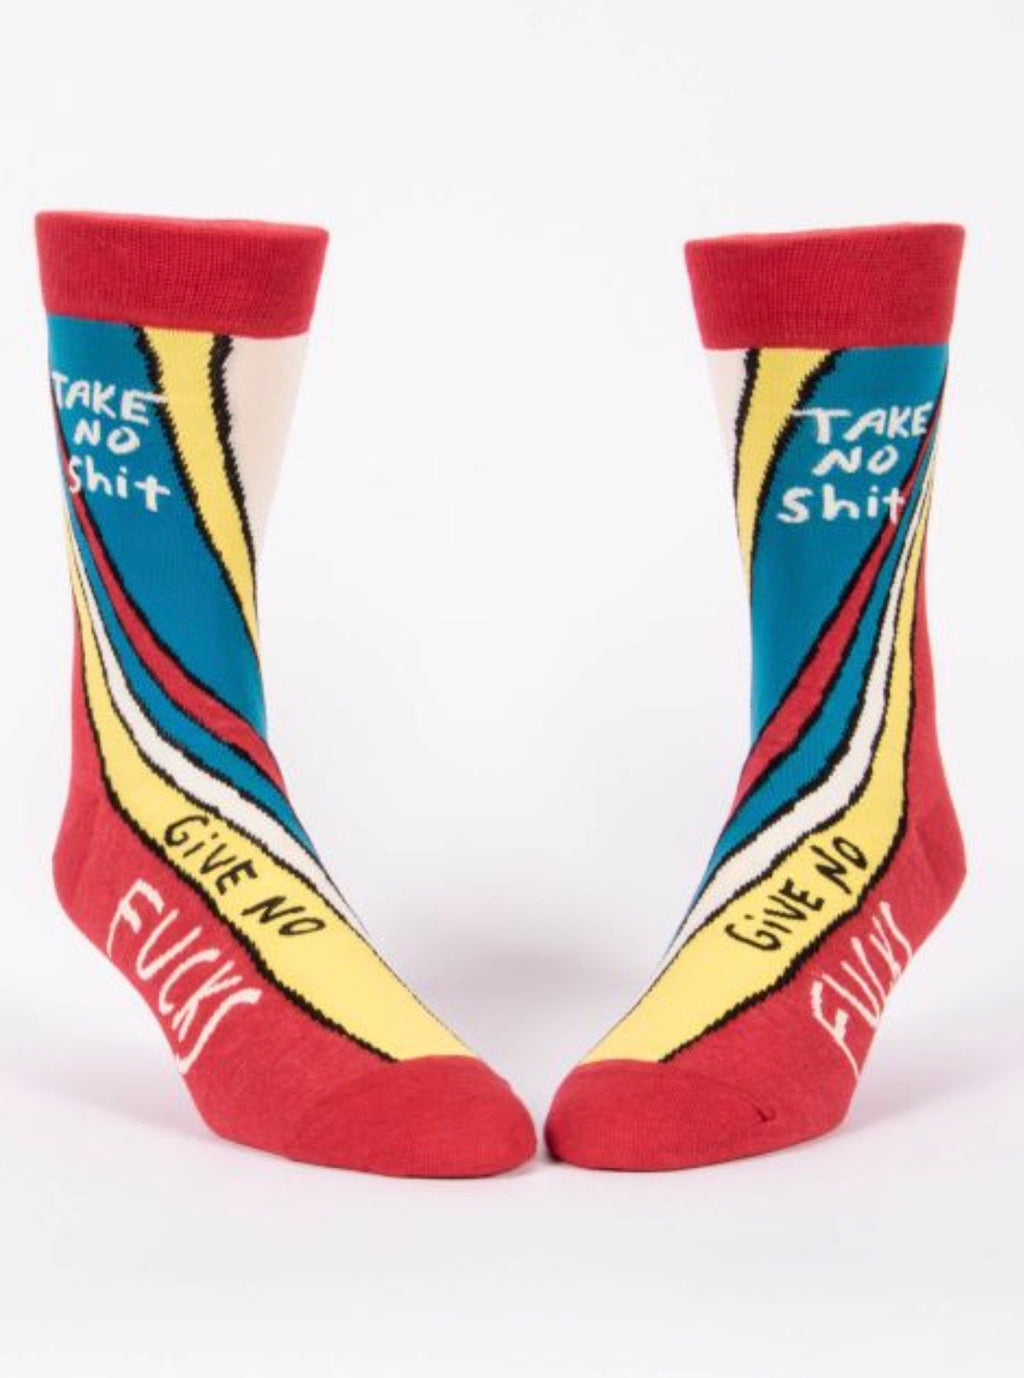 blueq-SW842-mens-crew-socks-take-no-shit-red